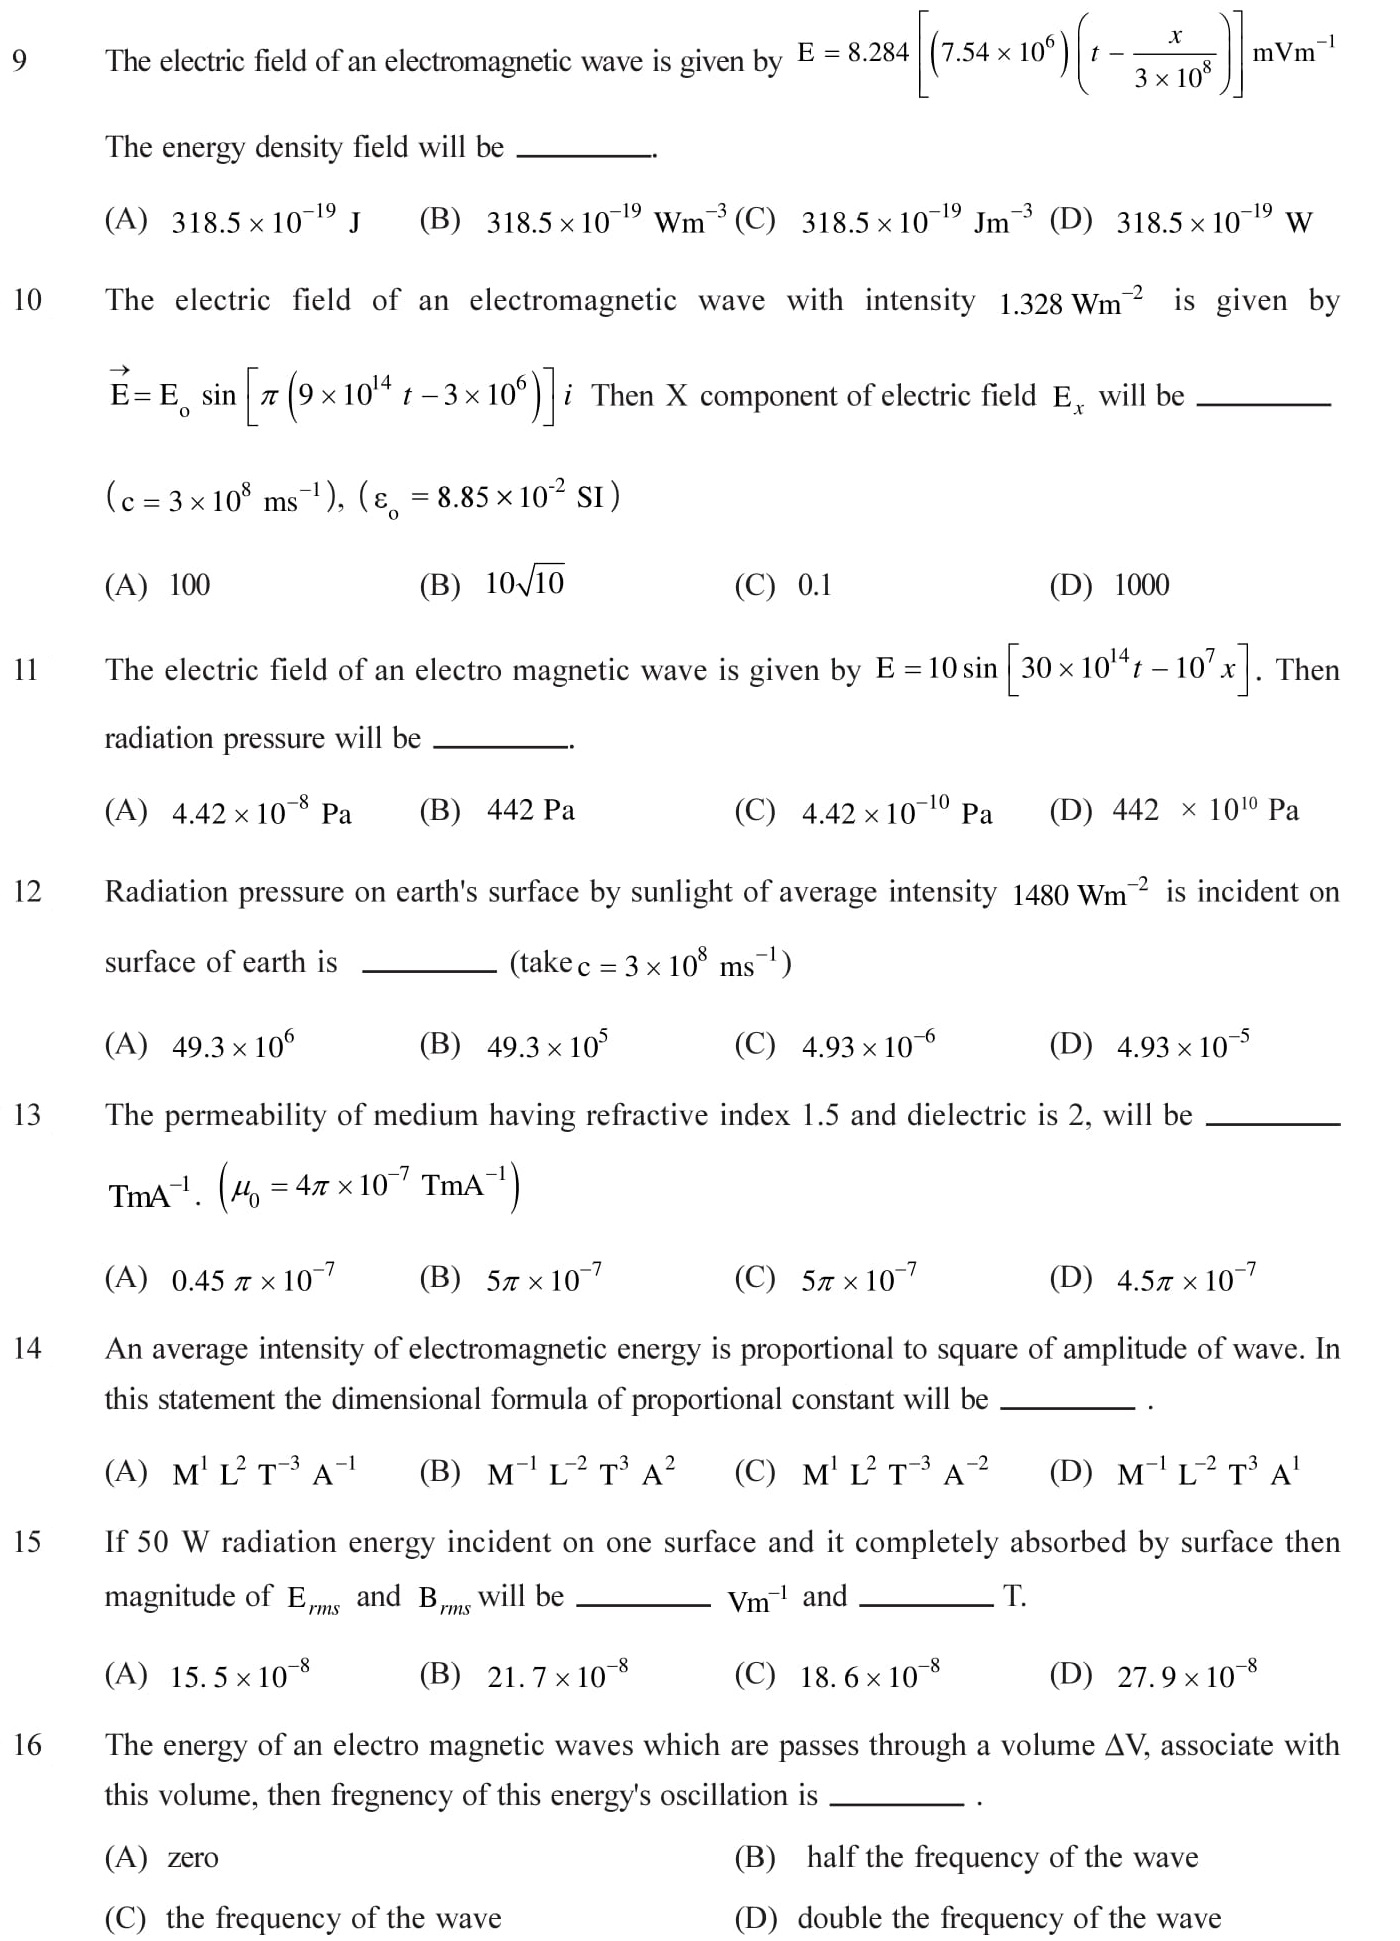 Questions based on Eletromagnetic Waves - EM Waves for Entrance Exams topic 3